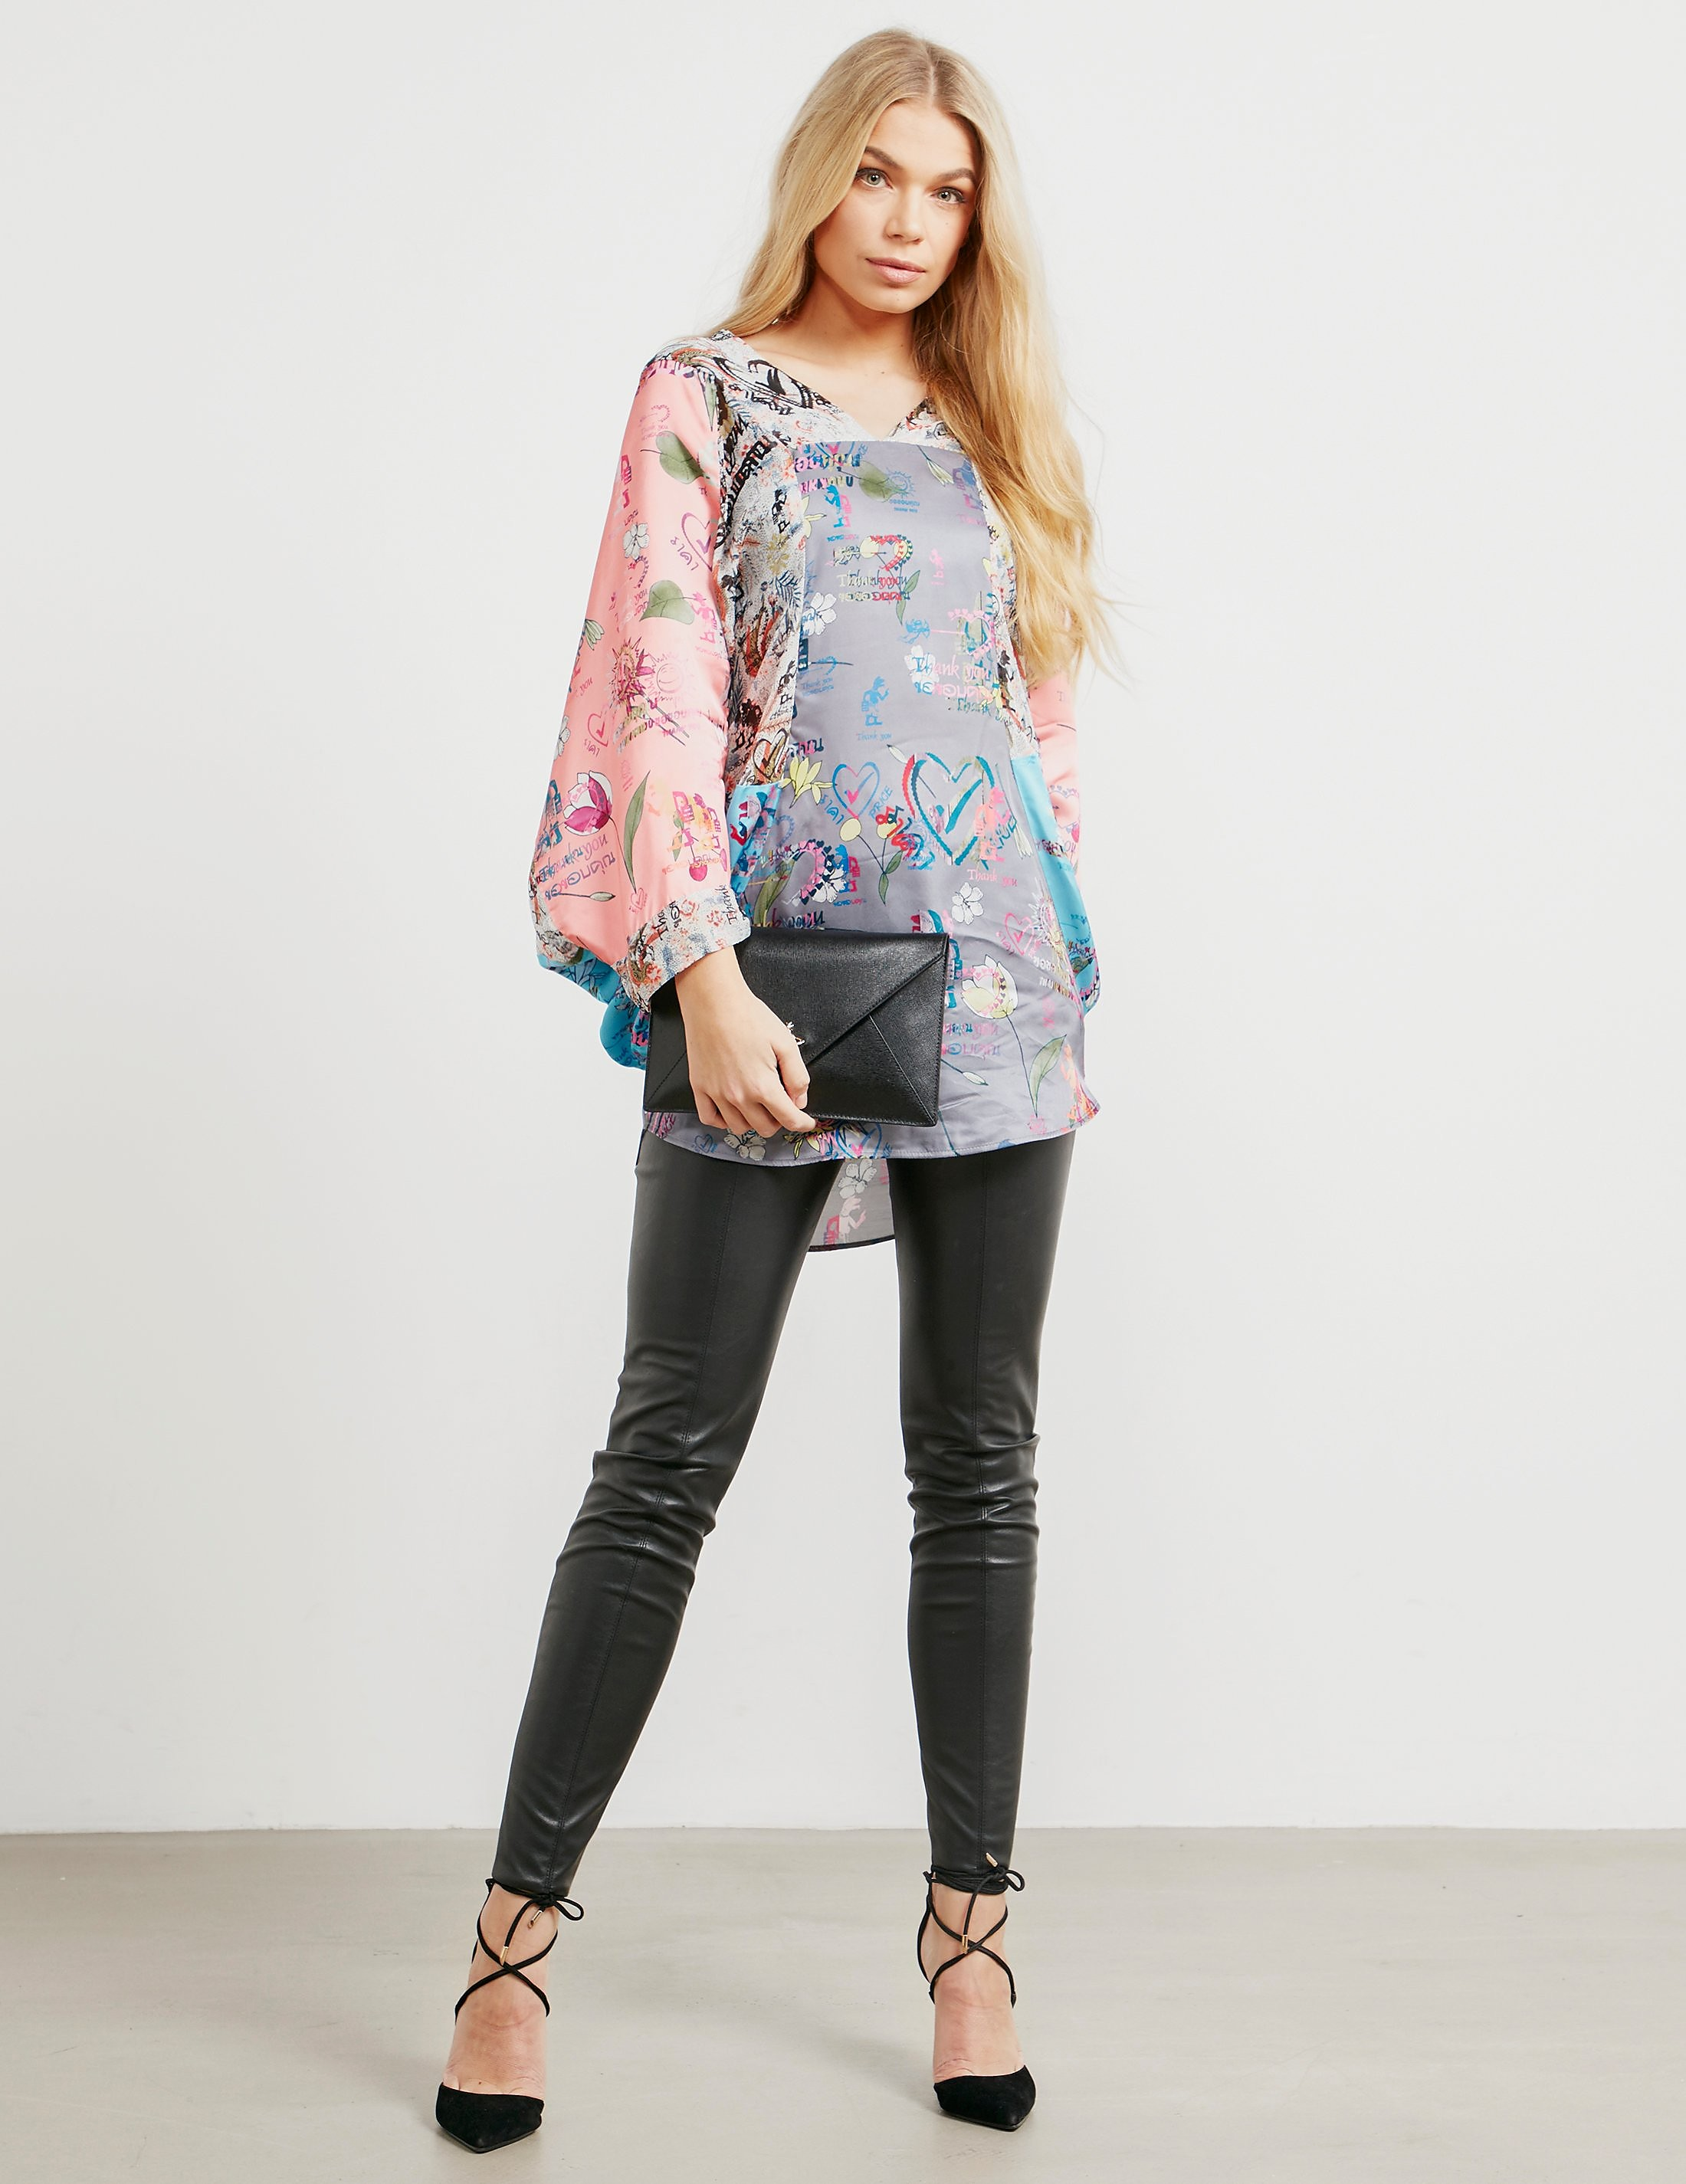 Vivienne Westwood Anglomania Musa Top